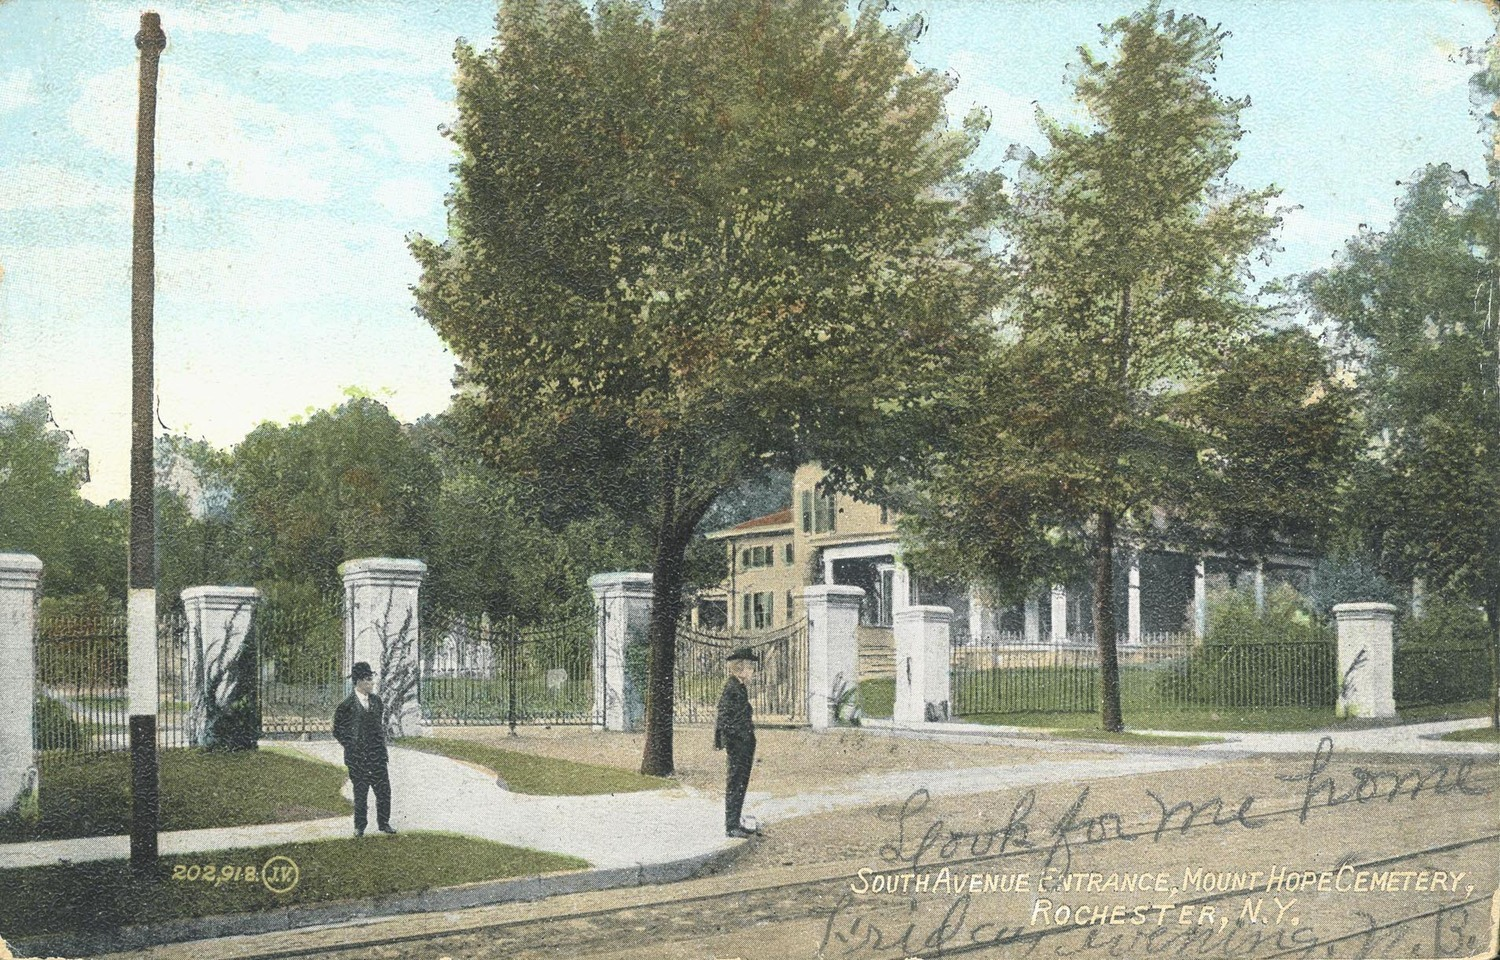 South Avenue Entrance, Mount Hope Cemetery, Rochester, N.Y.